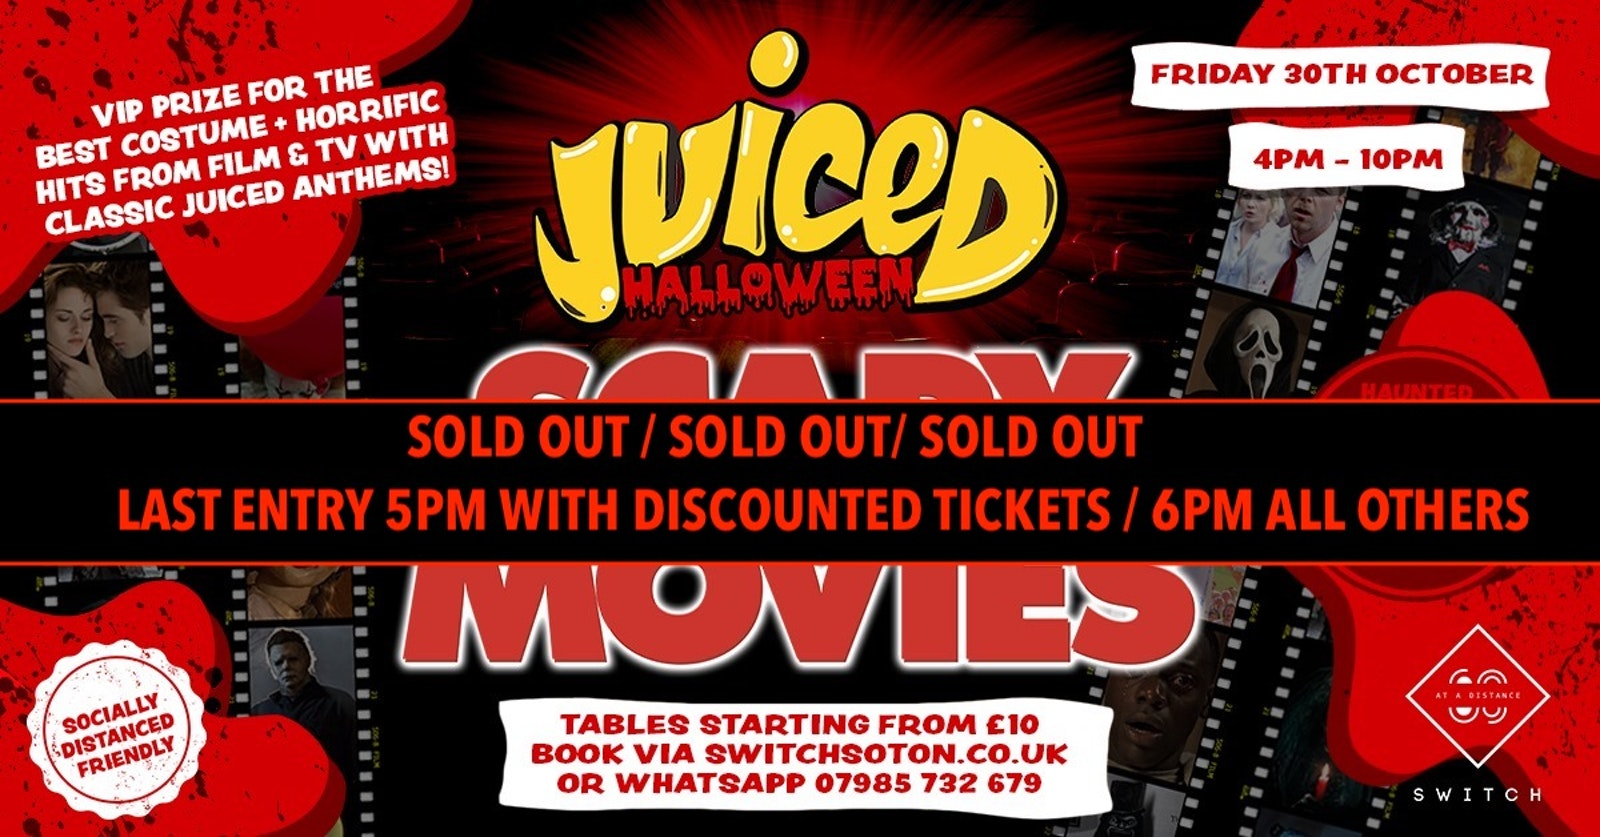 Juiced: Halloween – Scary Movies 75% Sold Out